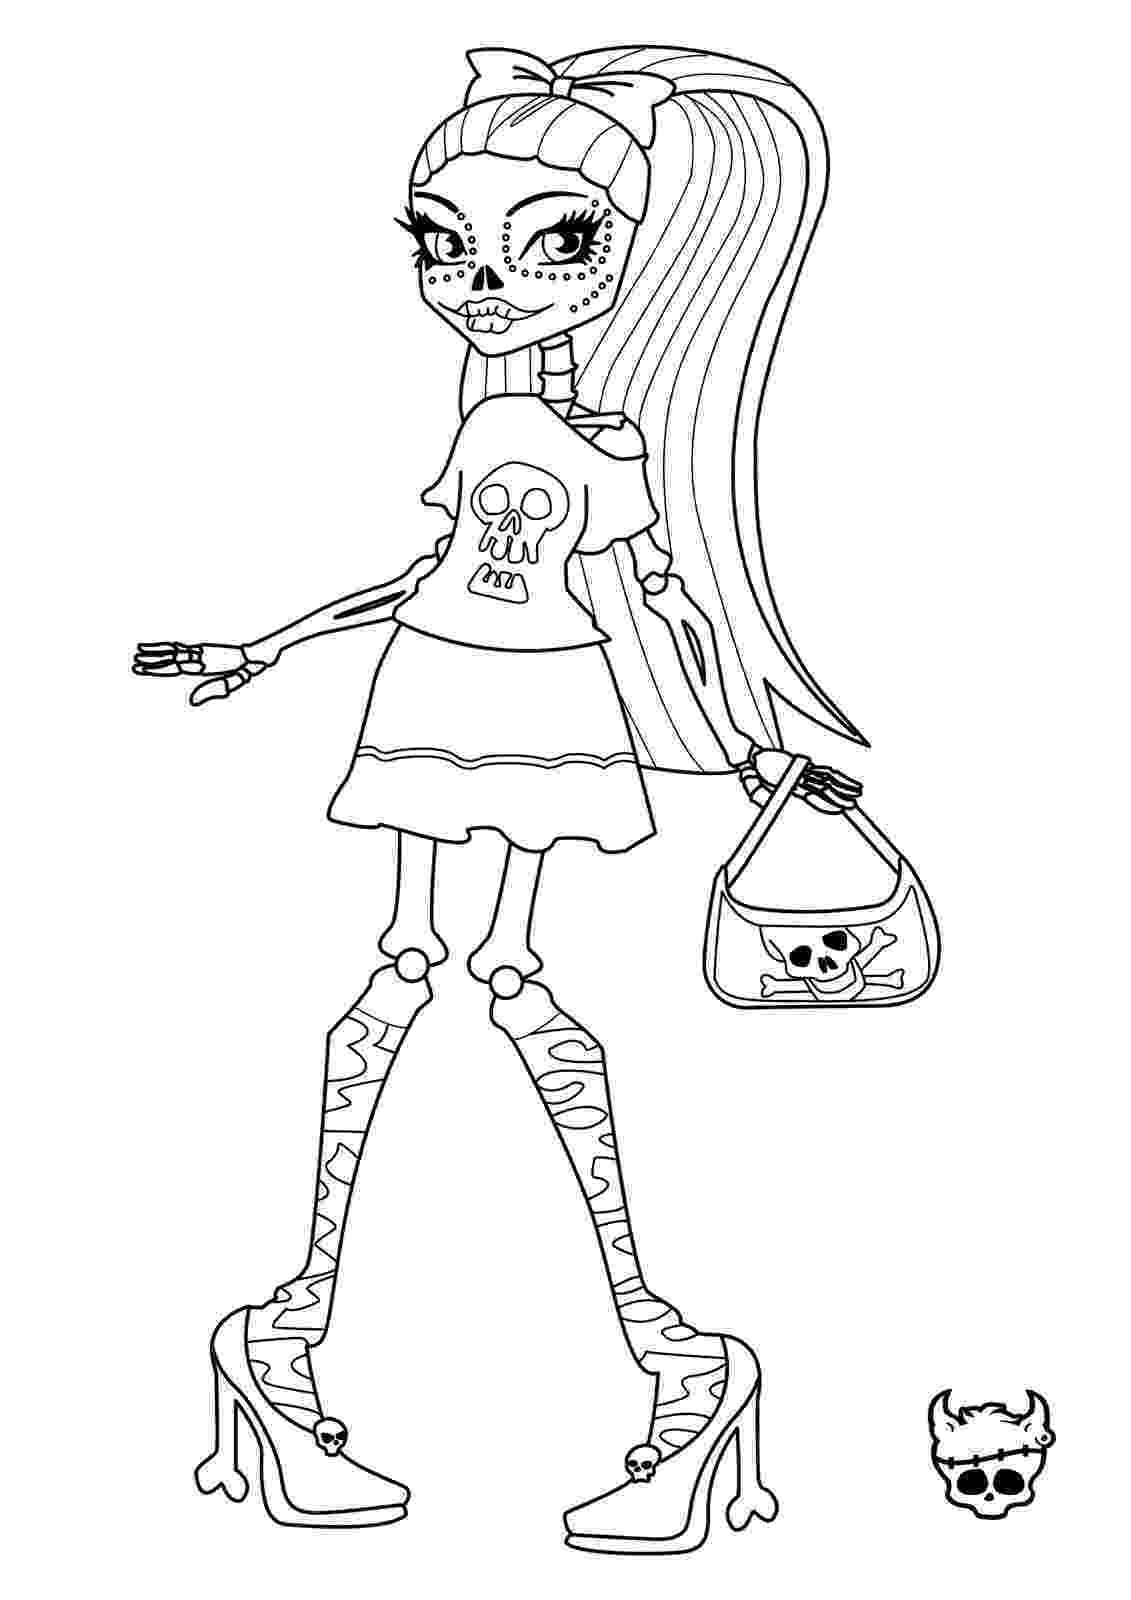 monsters high coloring pages monster high jinafire long coloring pages free printable monsters pages high coloring